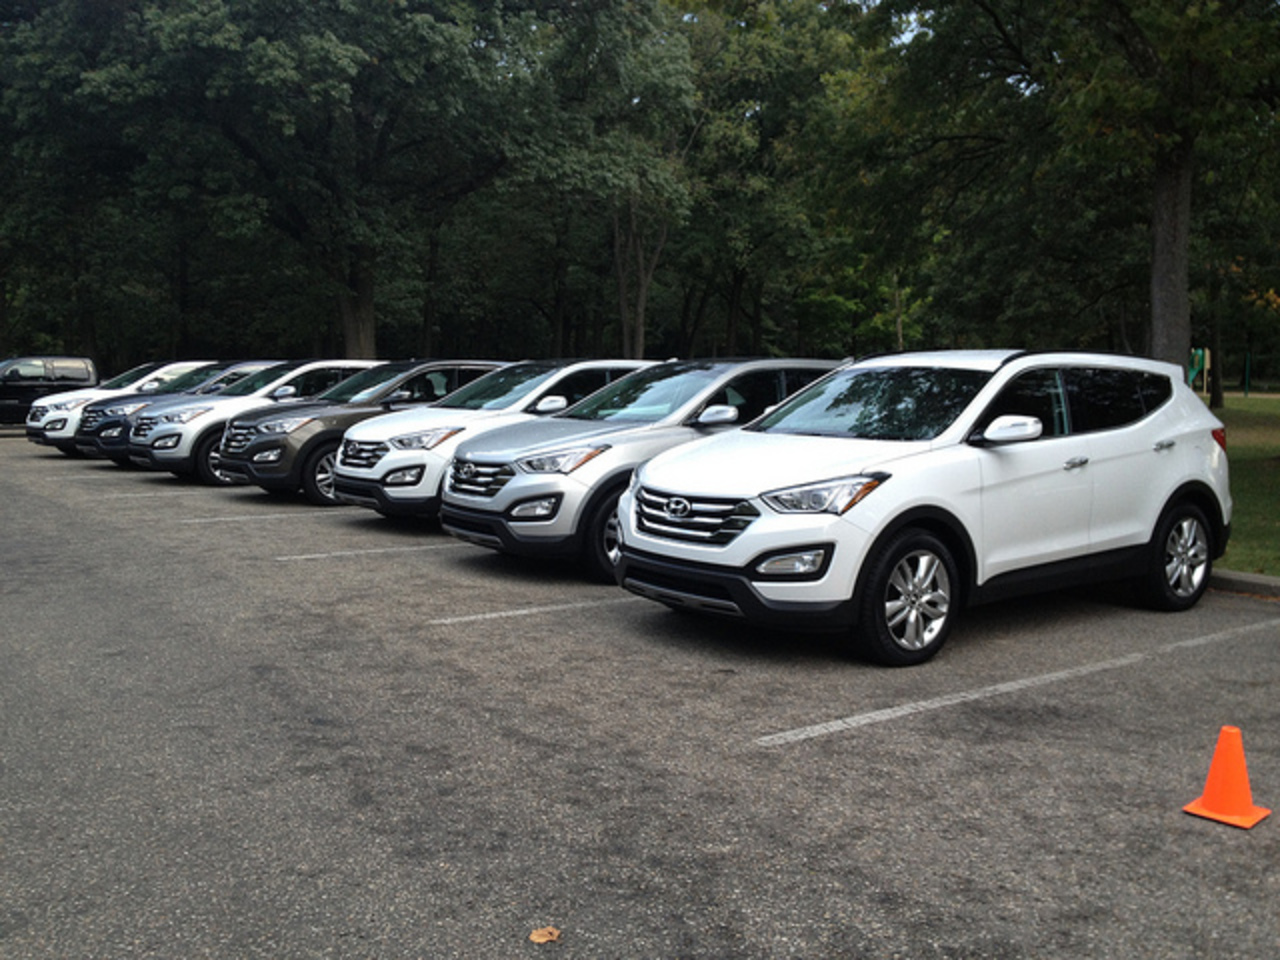 2013 Hyundai Santa Fe Sport | Flickr - Photo Sharing!